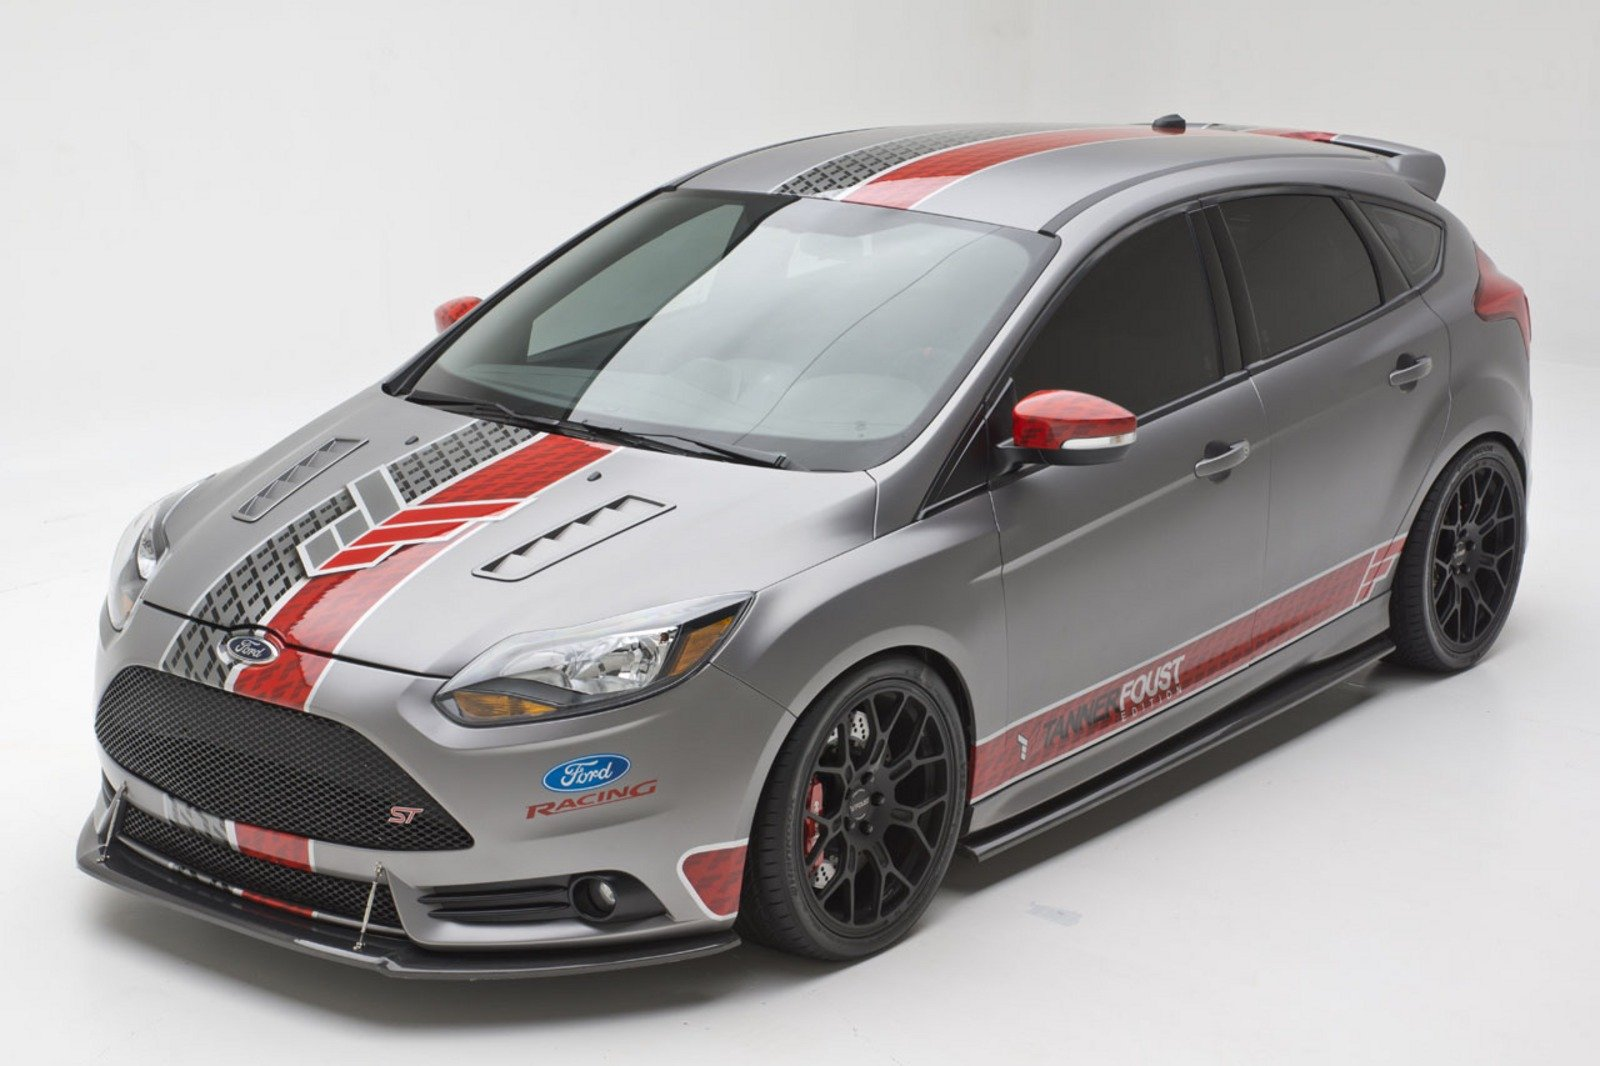 2013 ford focus st tanner foust edition by cobb tuning review top speed. Black Bedroom Furniture Sets. Home Design Ideas